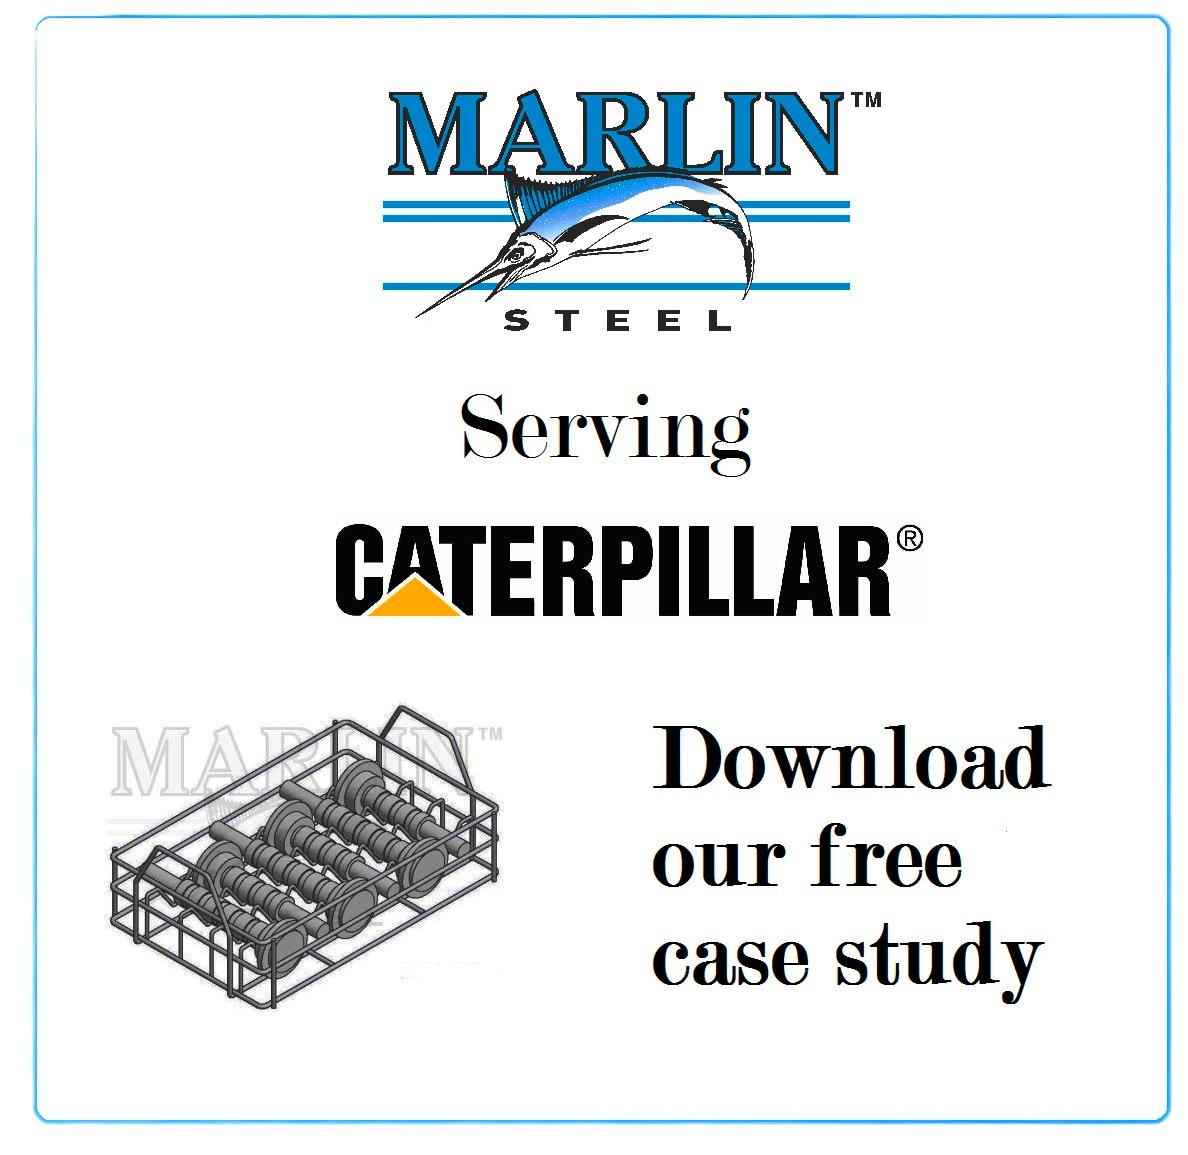 A Marlin Steel Case Study: Baskets for Caterpillar